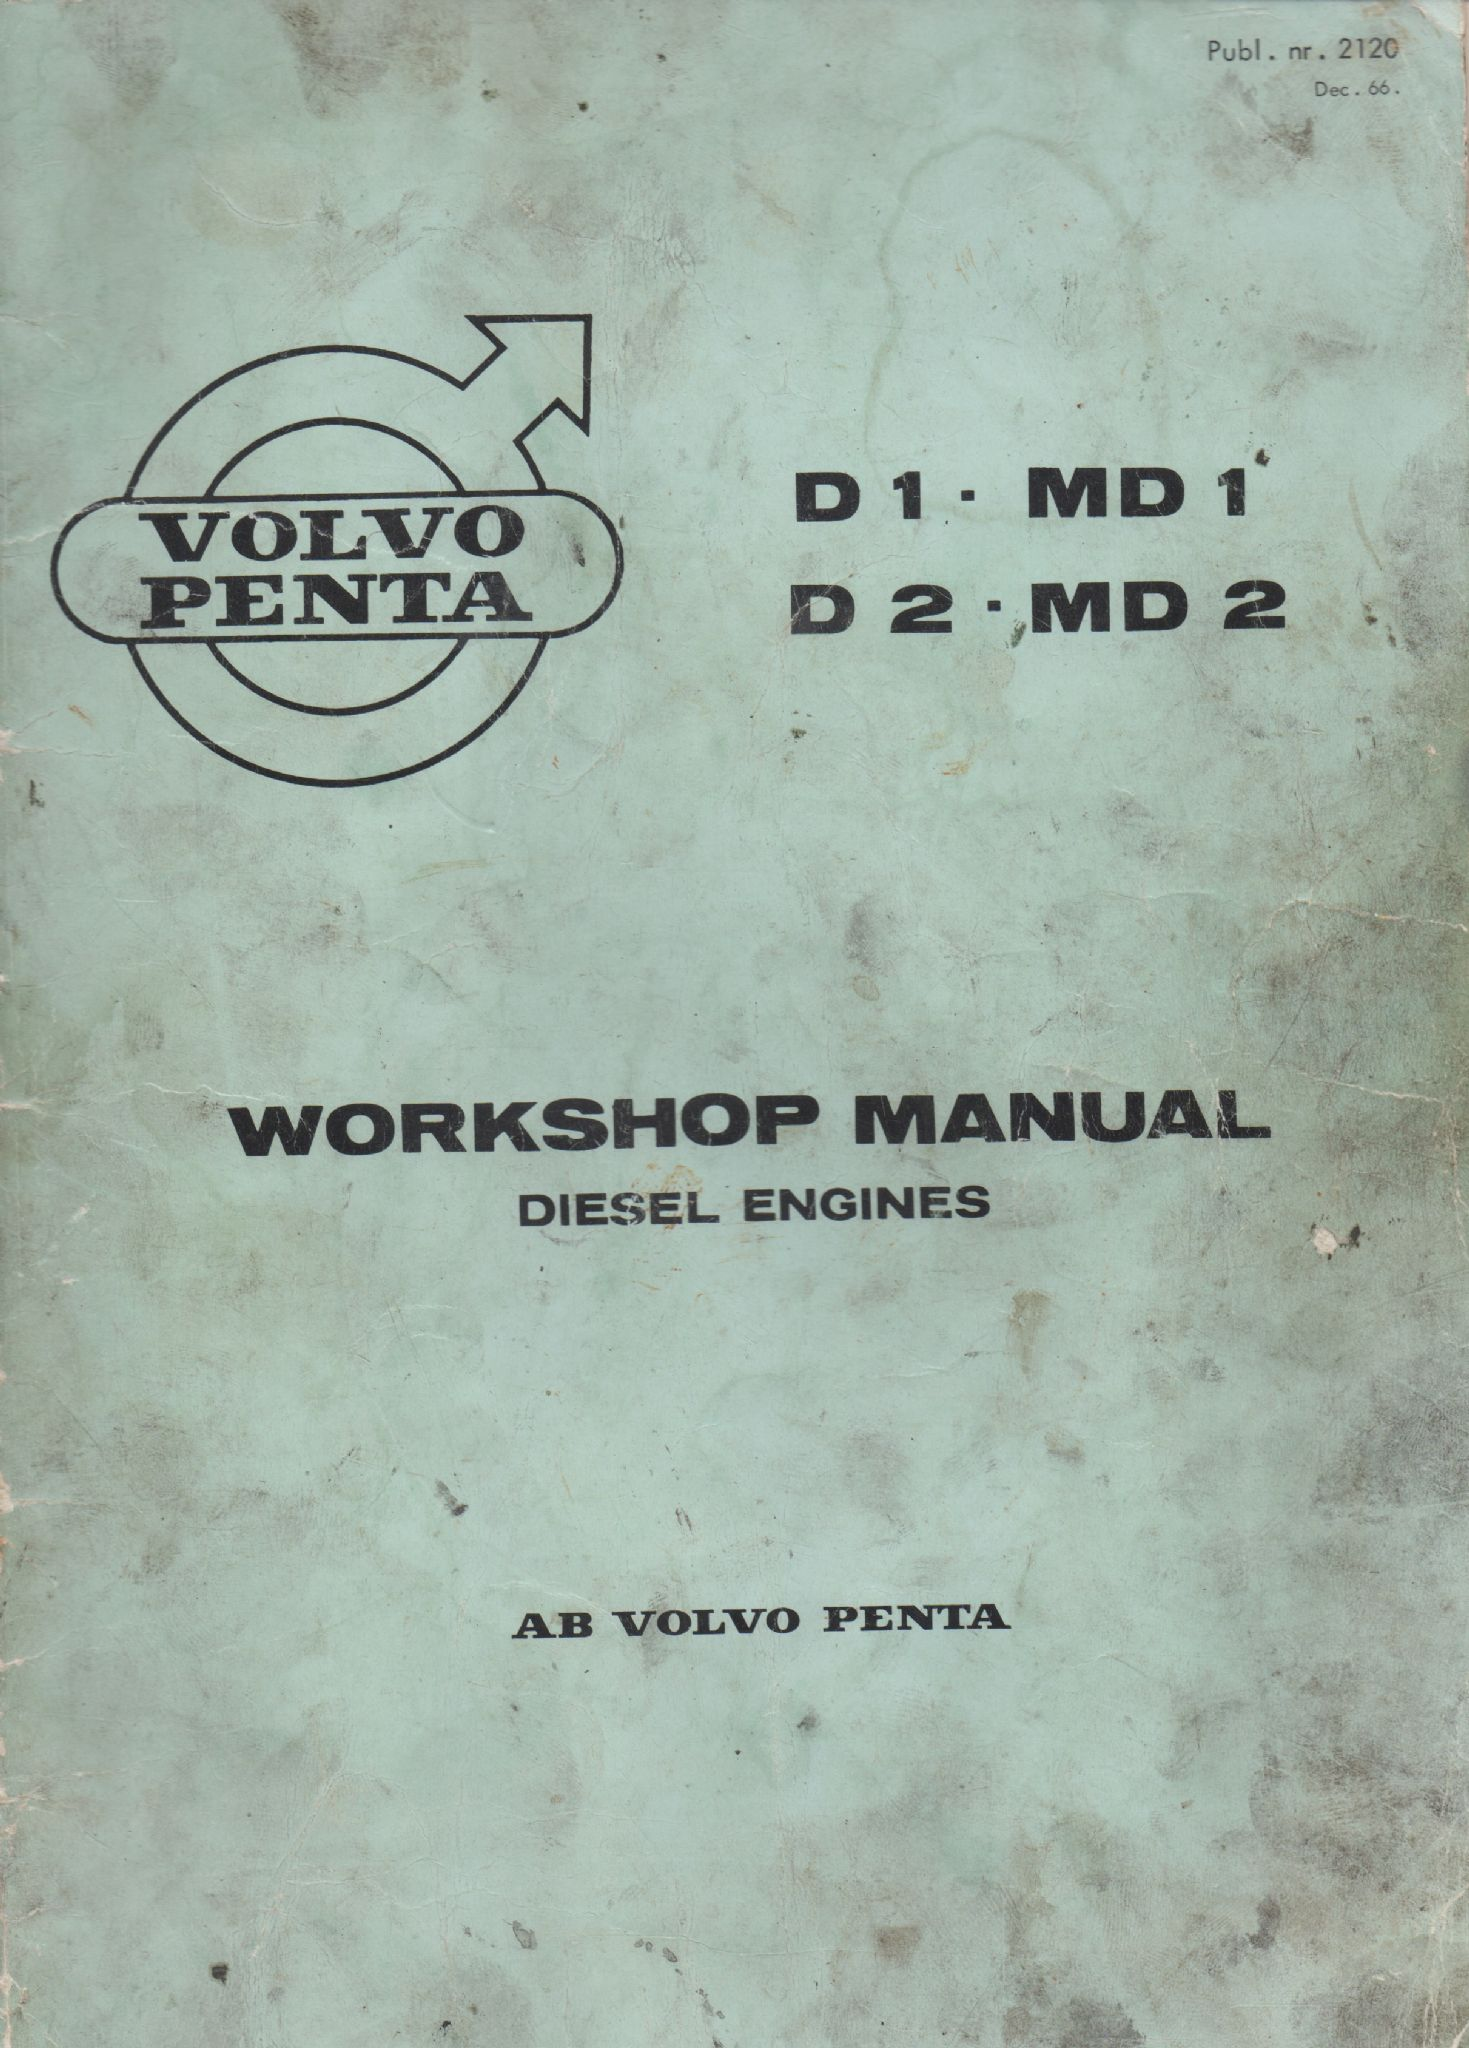 volvo penta workshop manual md2 open source user manual u2022 rh dramatic varieties com Volvo Penta 275 Outdrive 03 Volvo Penta 4.3